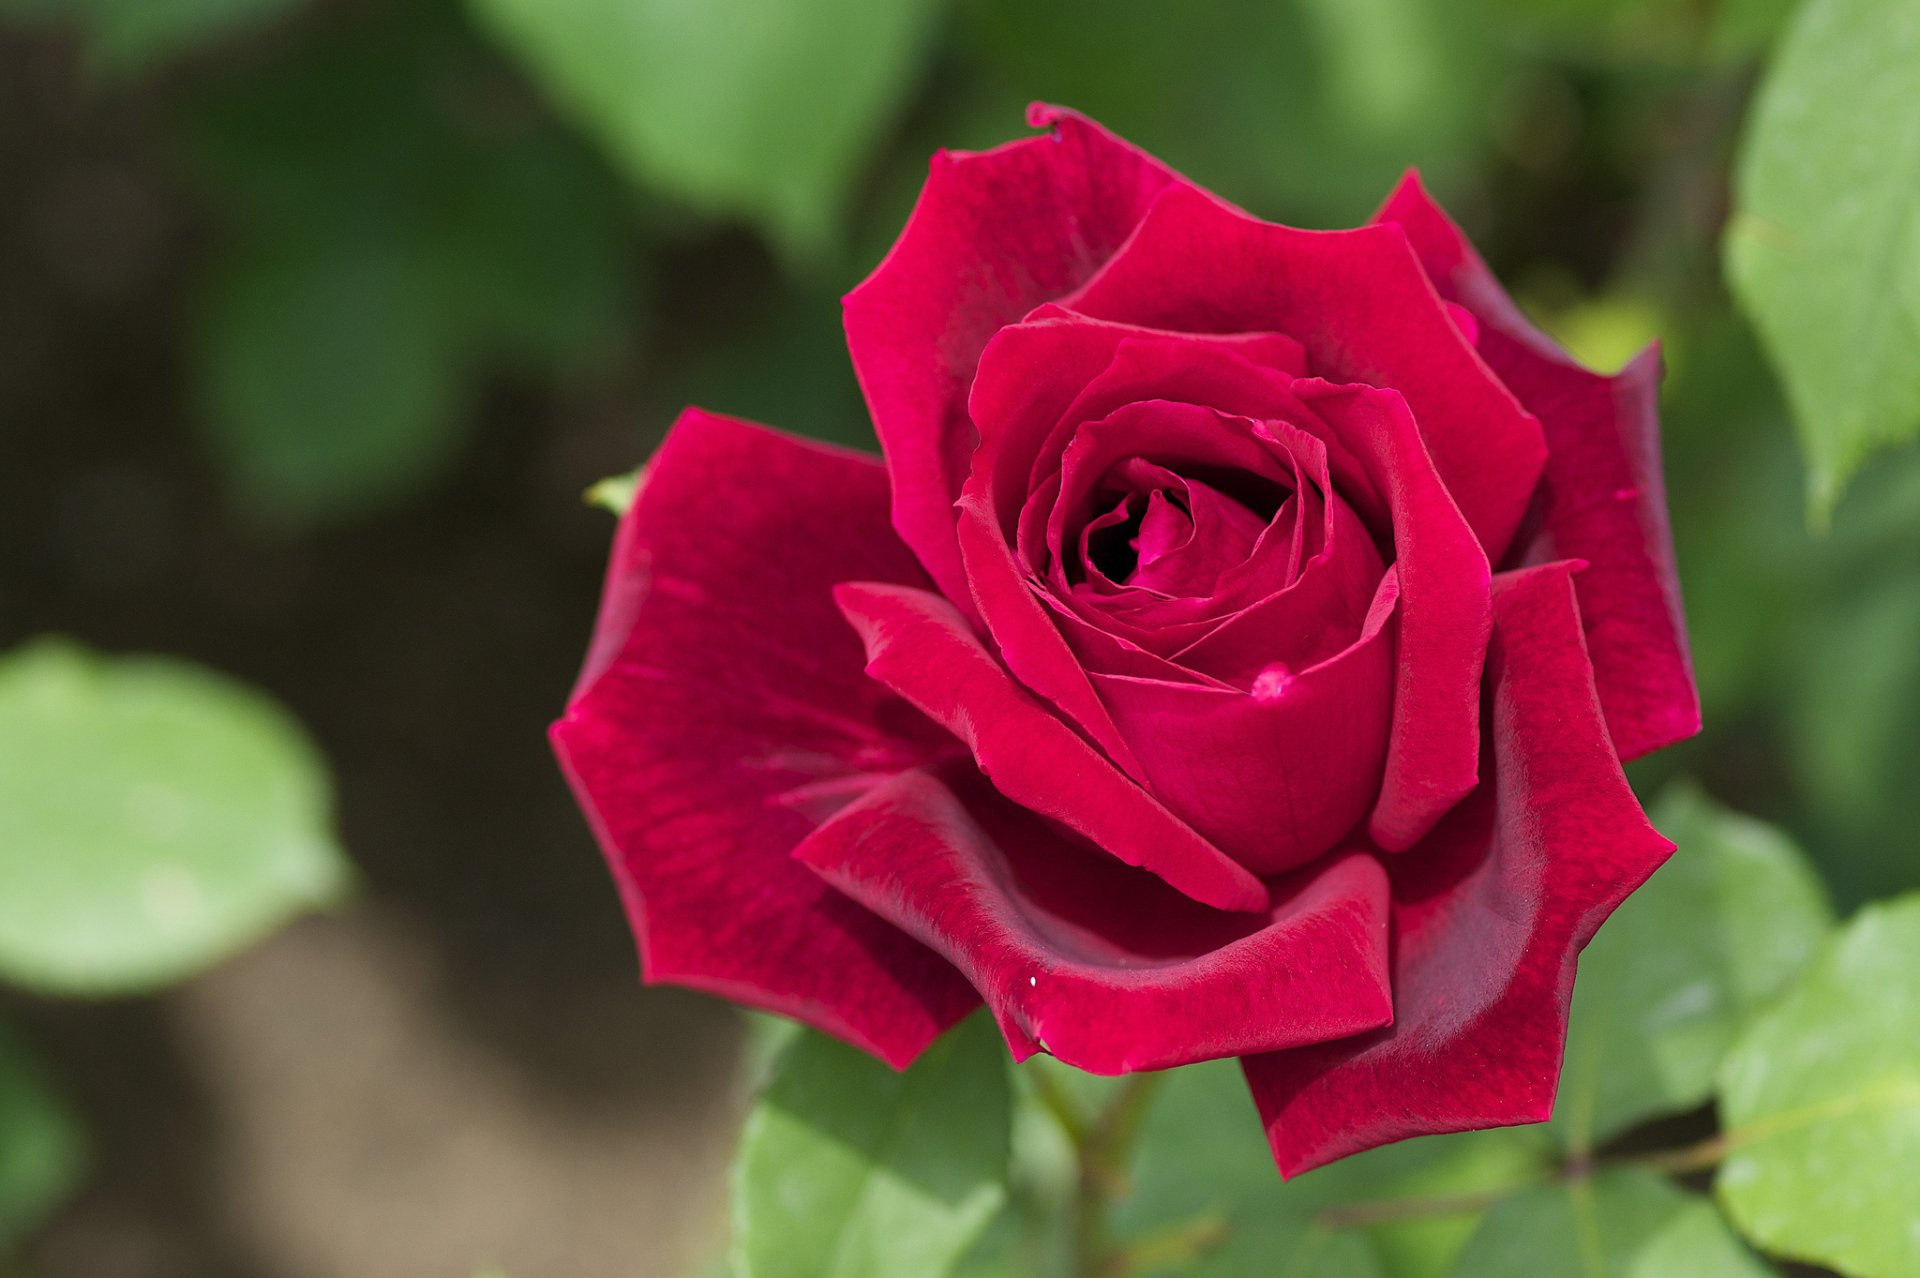 Earth - Rose Flower Red Rose Red Flower Wallpaper